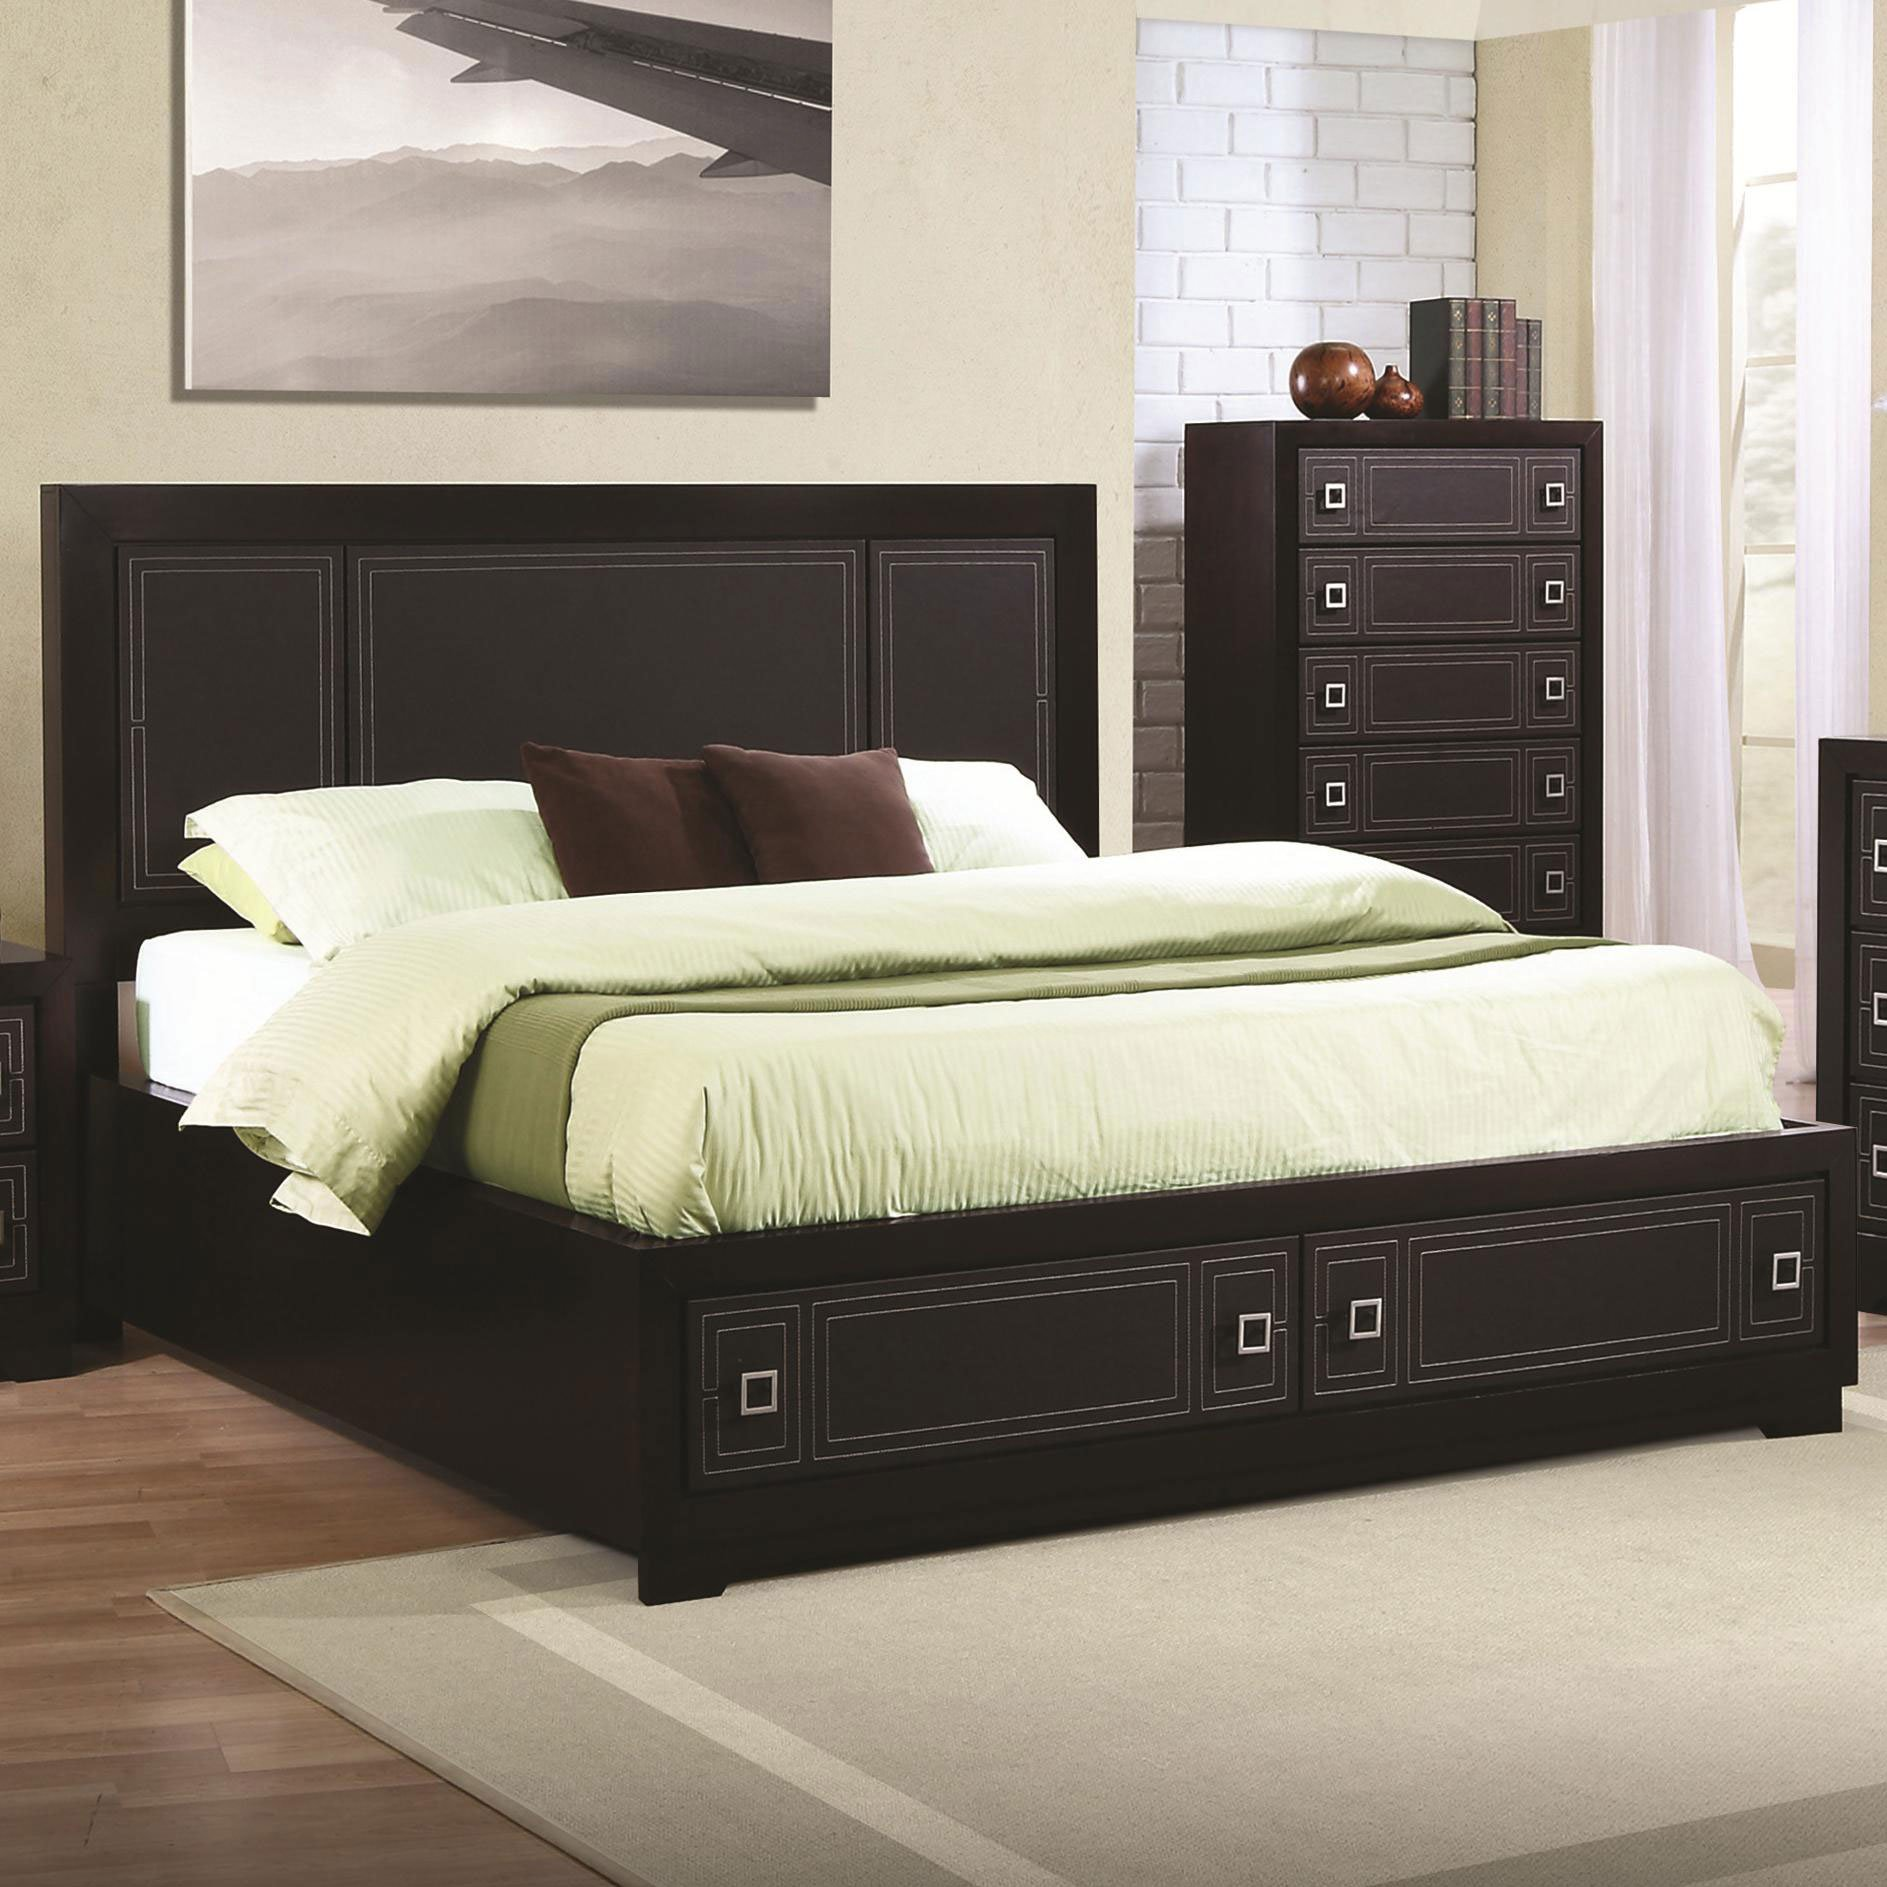 Coaster home 200661kw elijah california king bed with leatherette panel headboard and footboard - Cal king bed with drawers ...